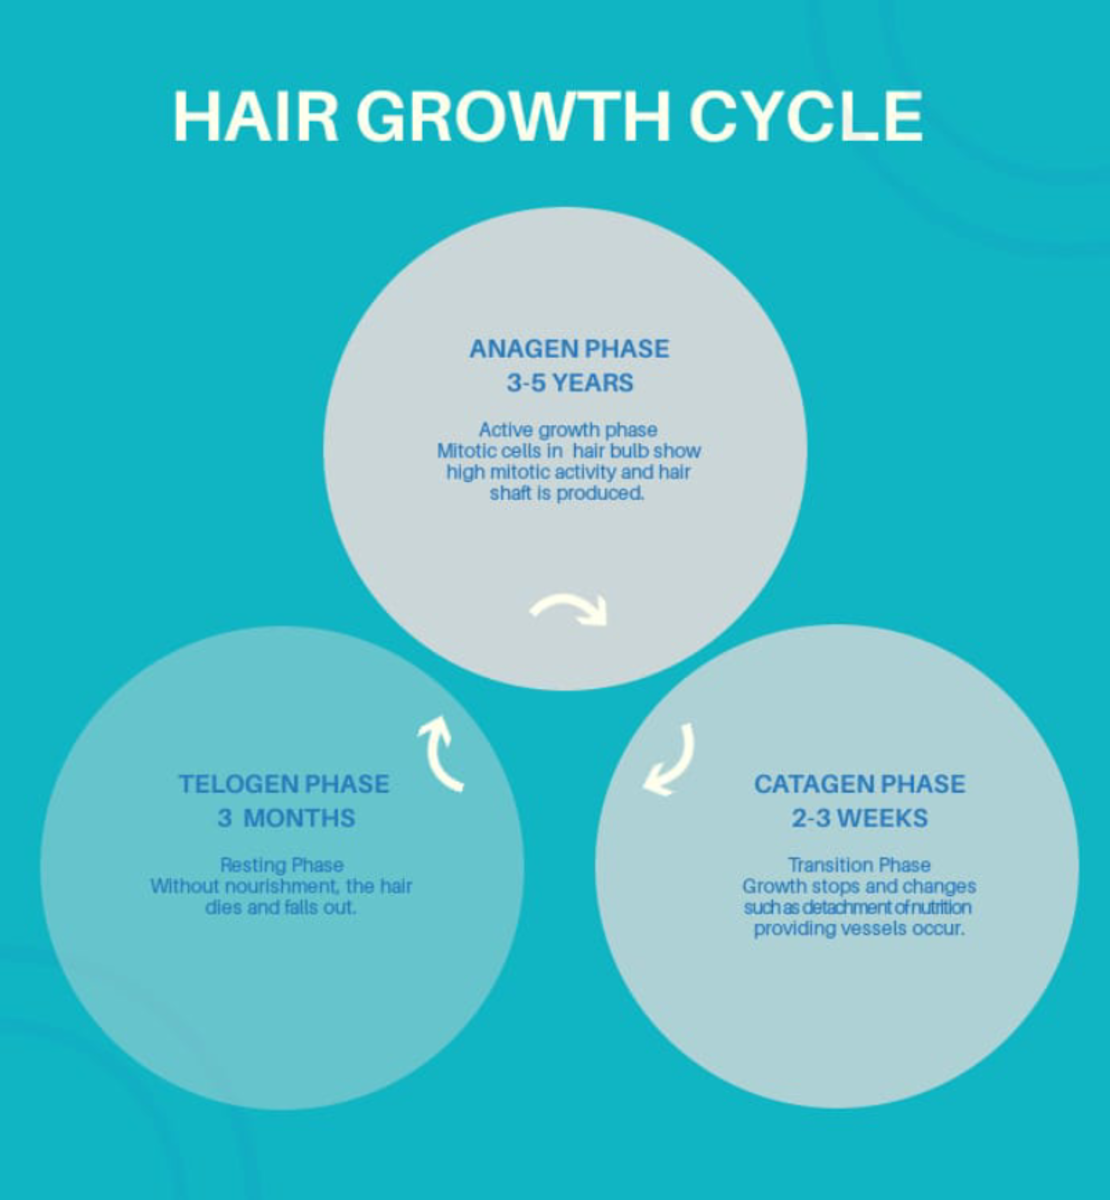 Normal hair growth cycle.